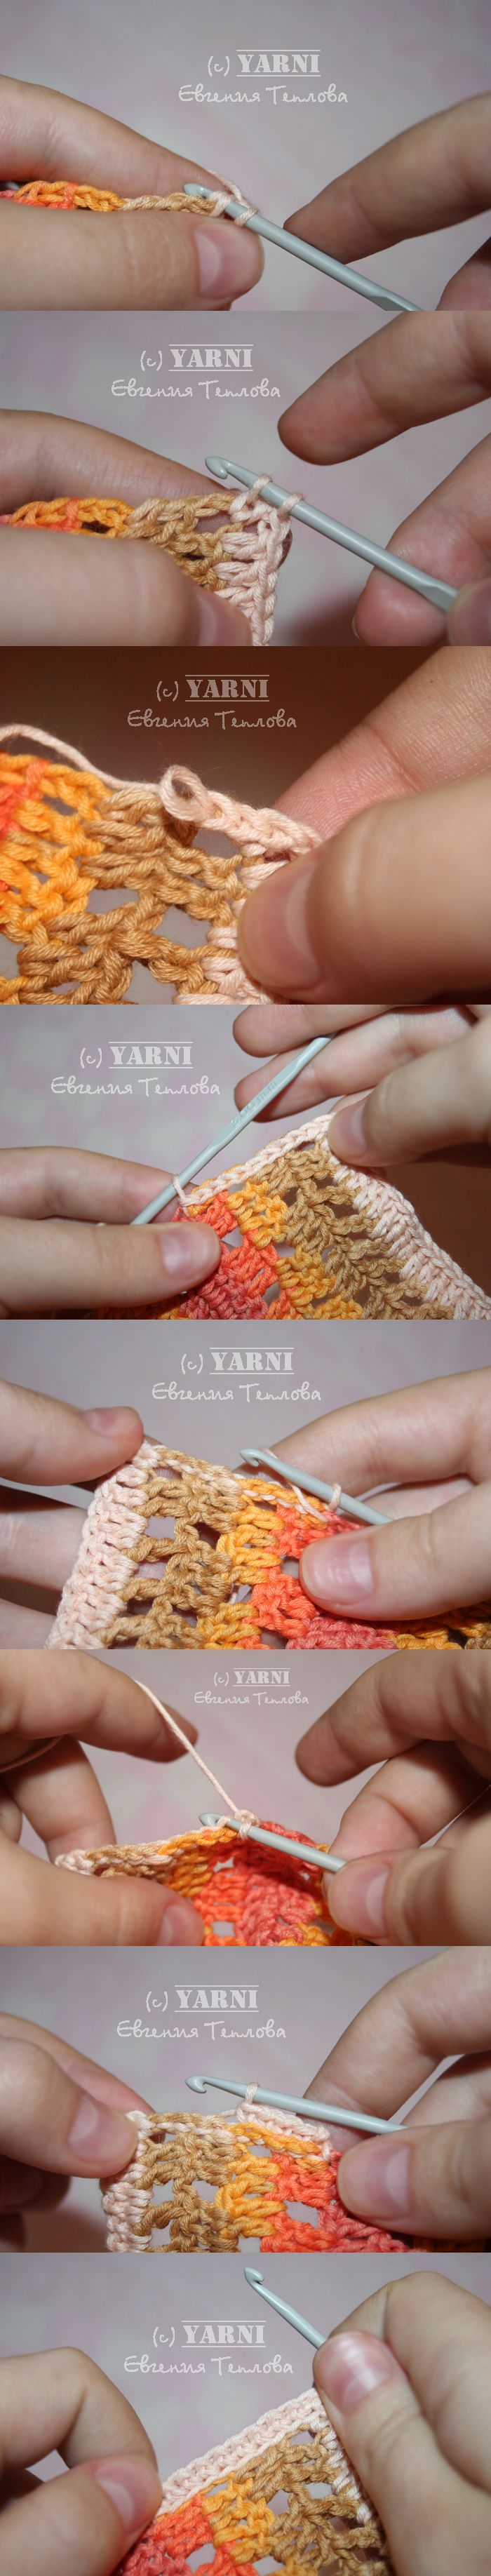 How to Have Impeccables Sides on your Crochet Work - Photo Tutorial ❥ 4U // hf